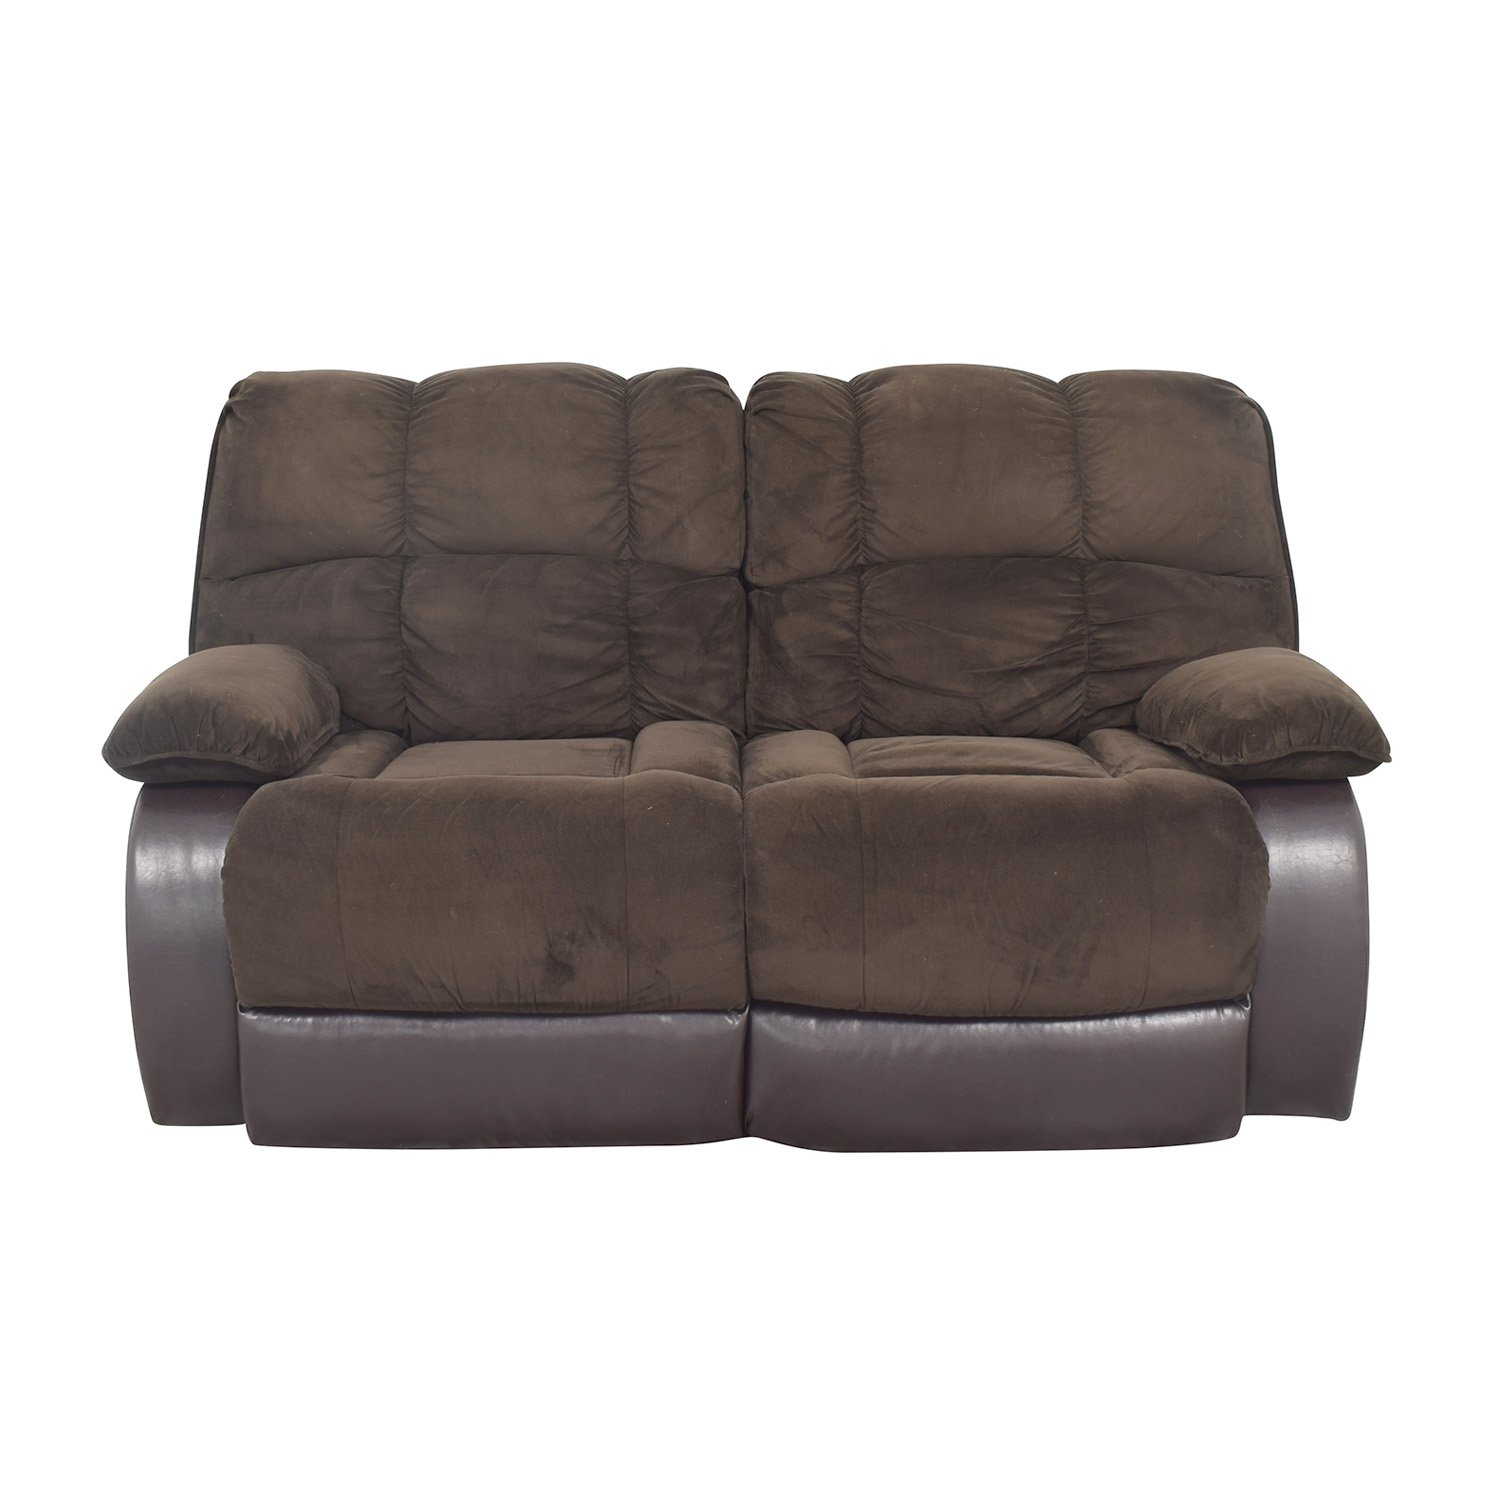 Raymour & Flanigan Raymour & Flanigan Reclining Loveseat ct